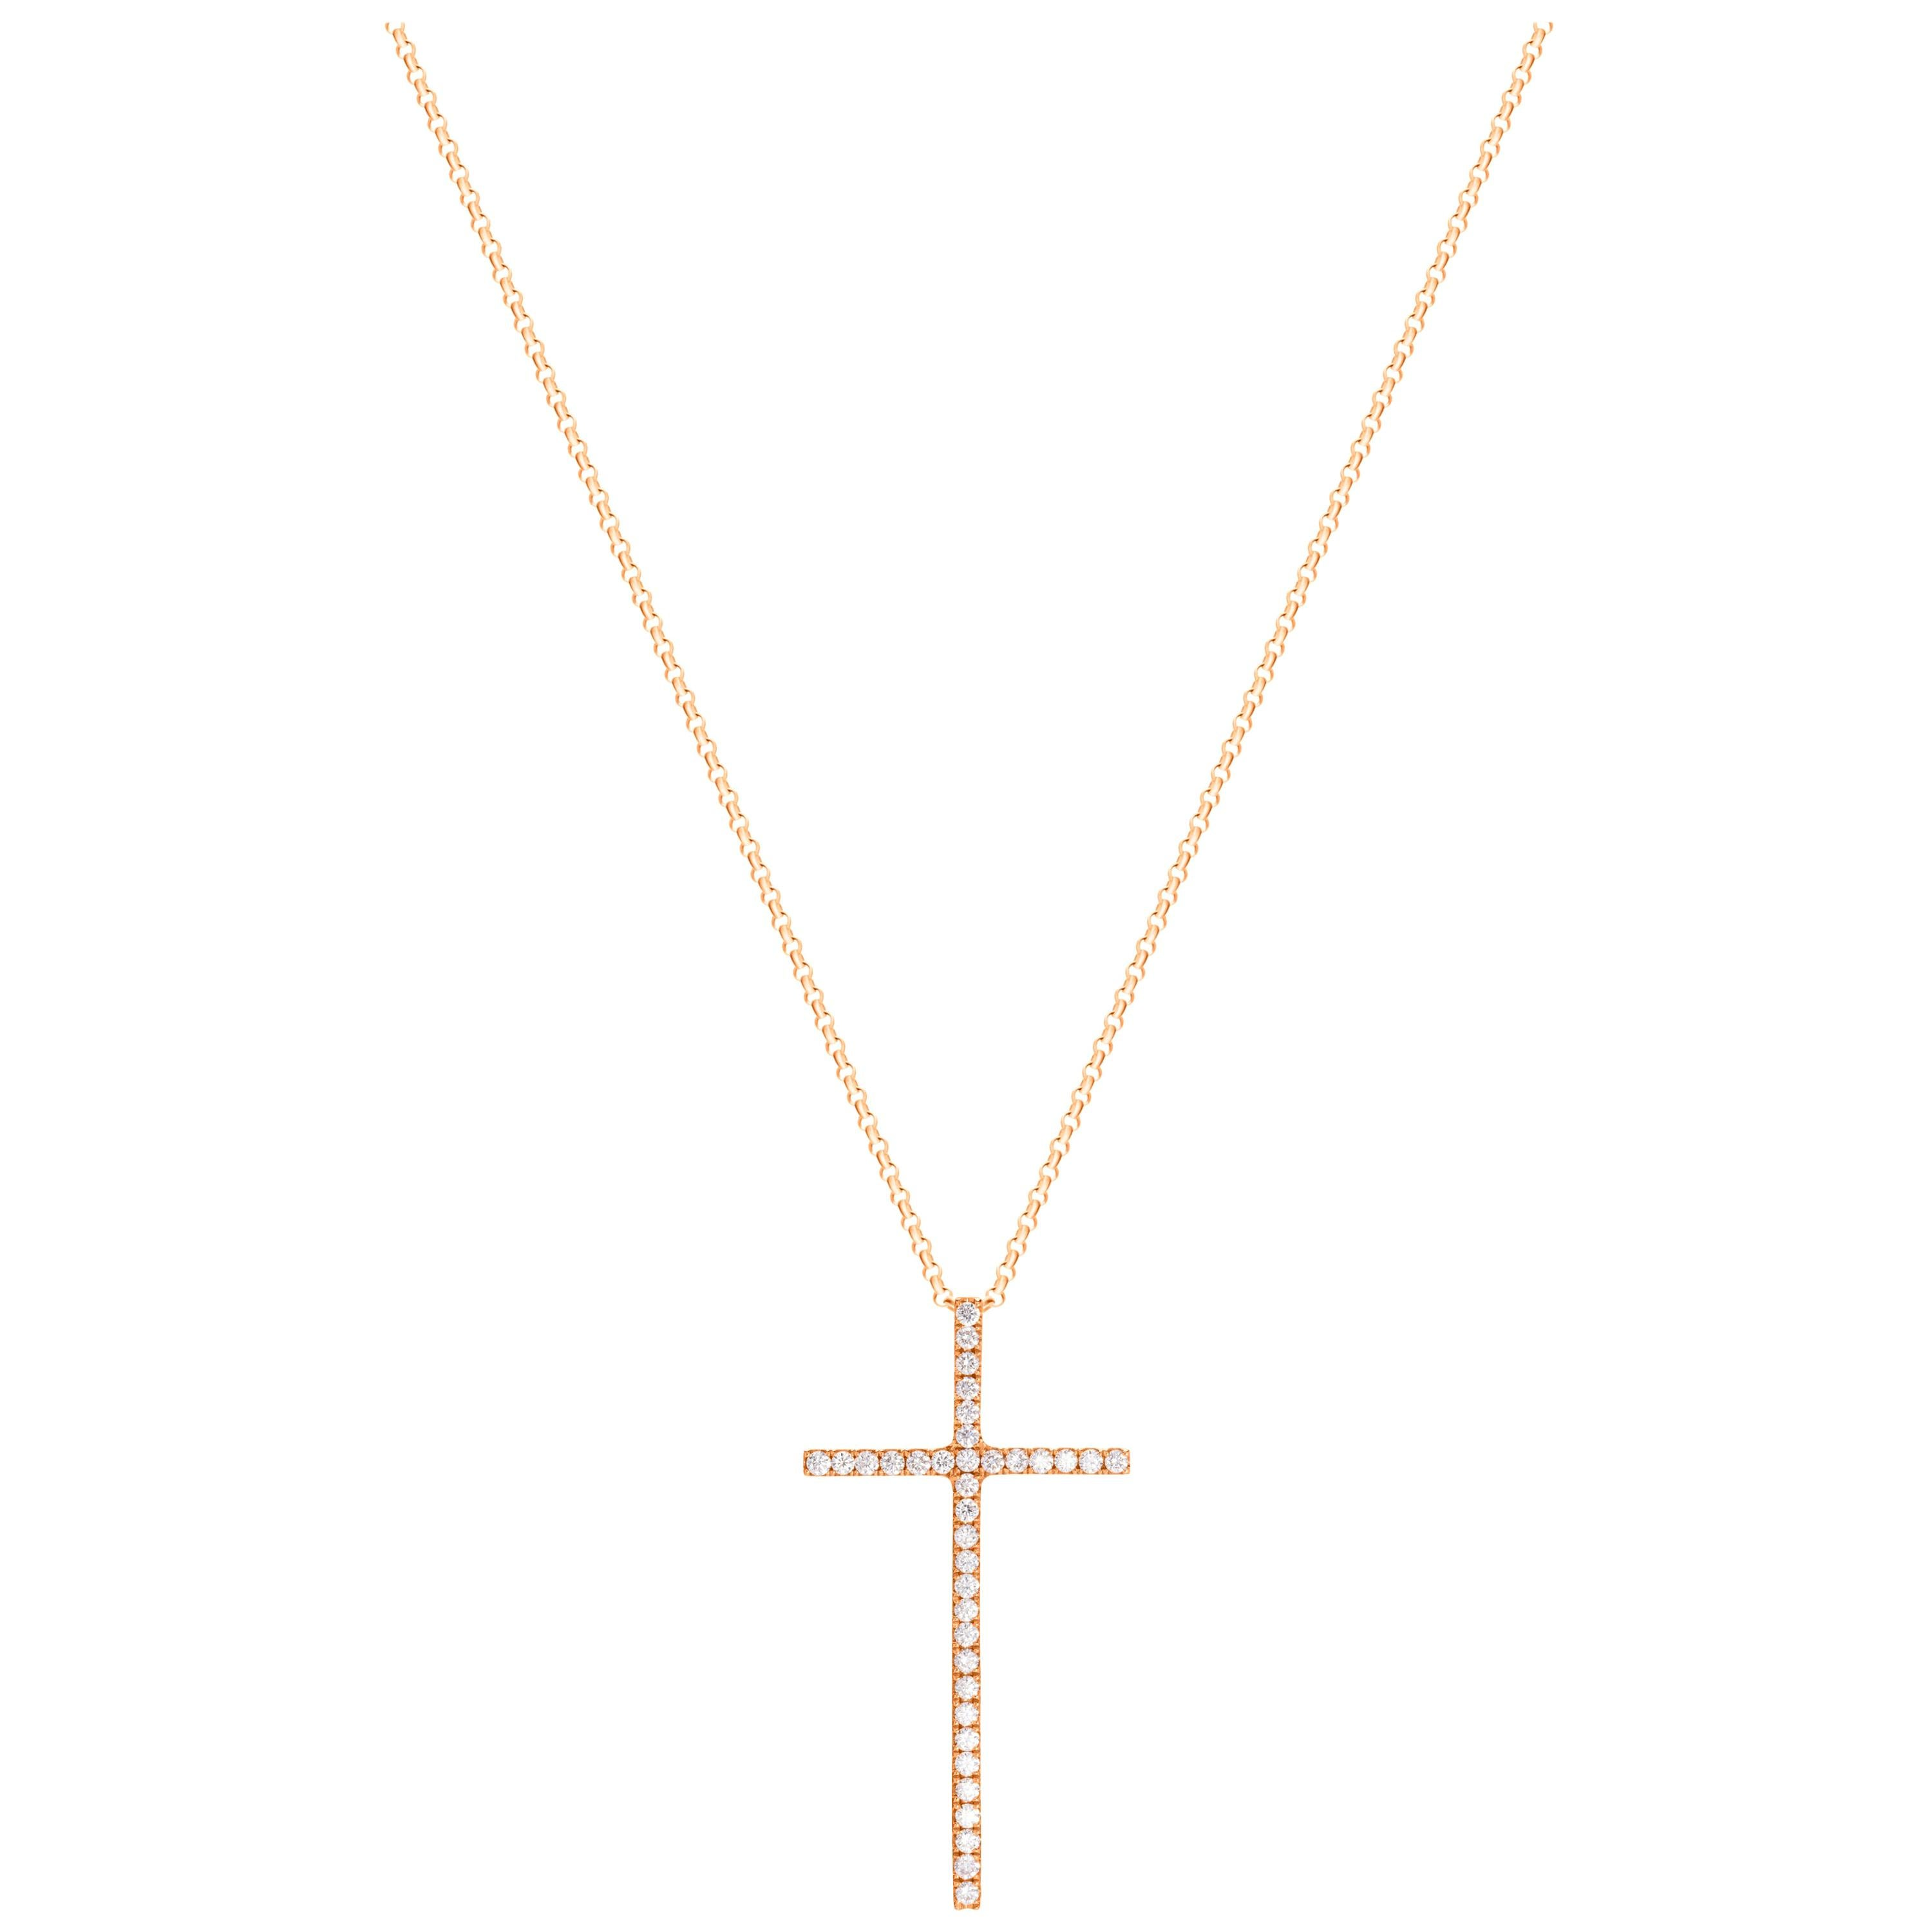 0.60 Carat Round Brilliant Cut Diamond 18 Karat Rose Gold Cross Pendant Necklace